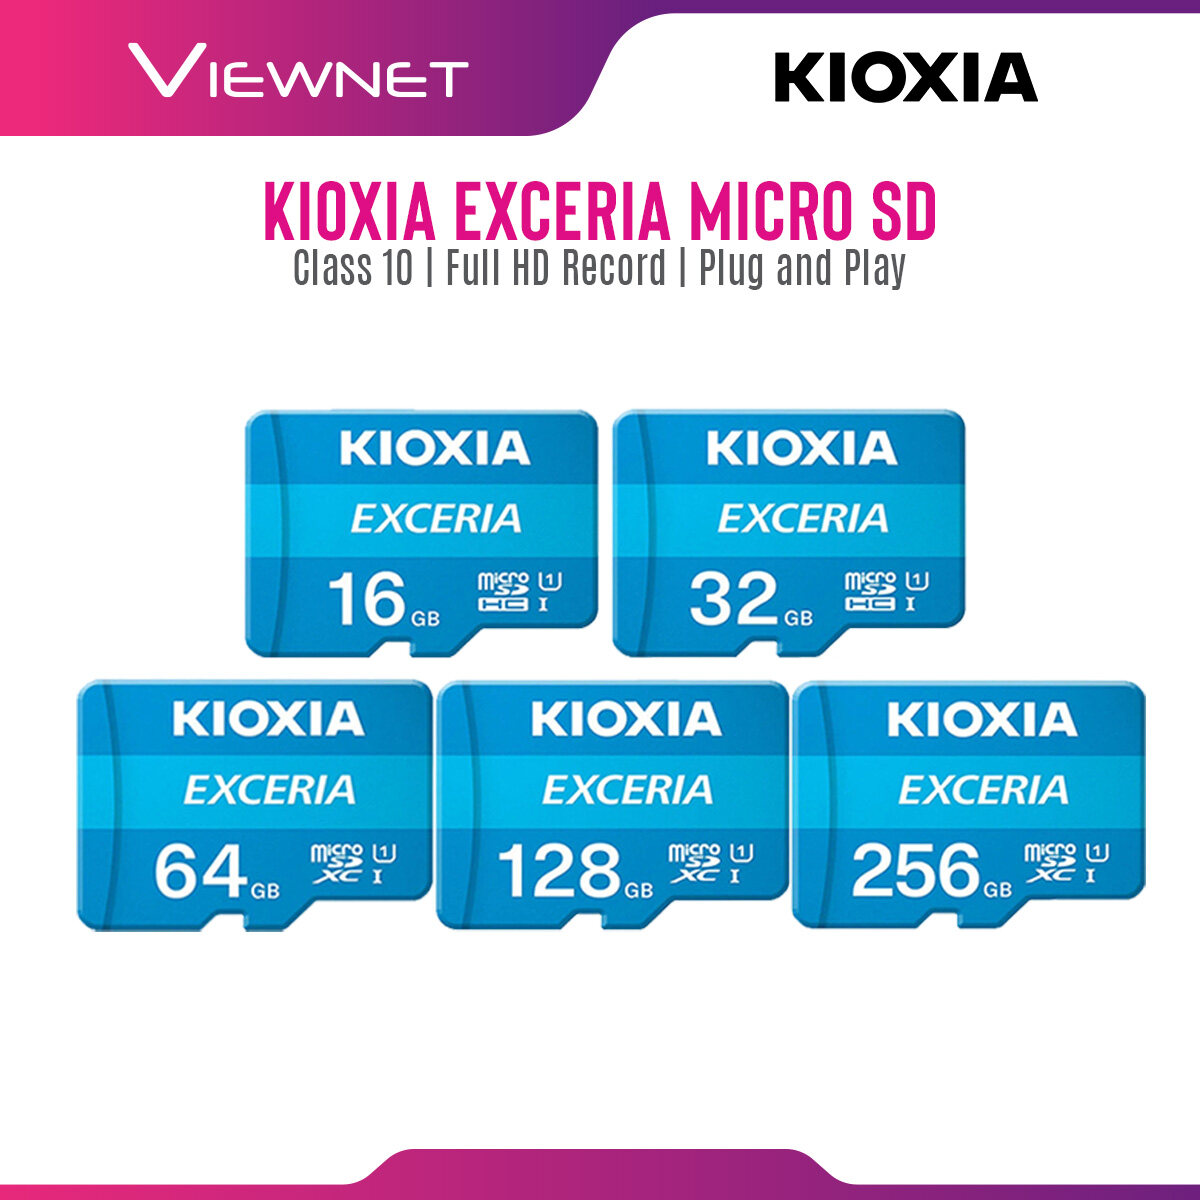 Kioxia Exceria MicroSD Memory Card with Full HD Video Record, Class 10 Speed, Up To 100MB/s, Android Compatible